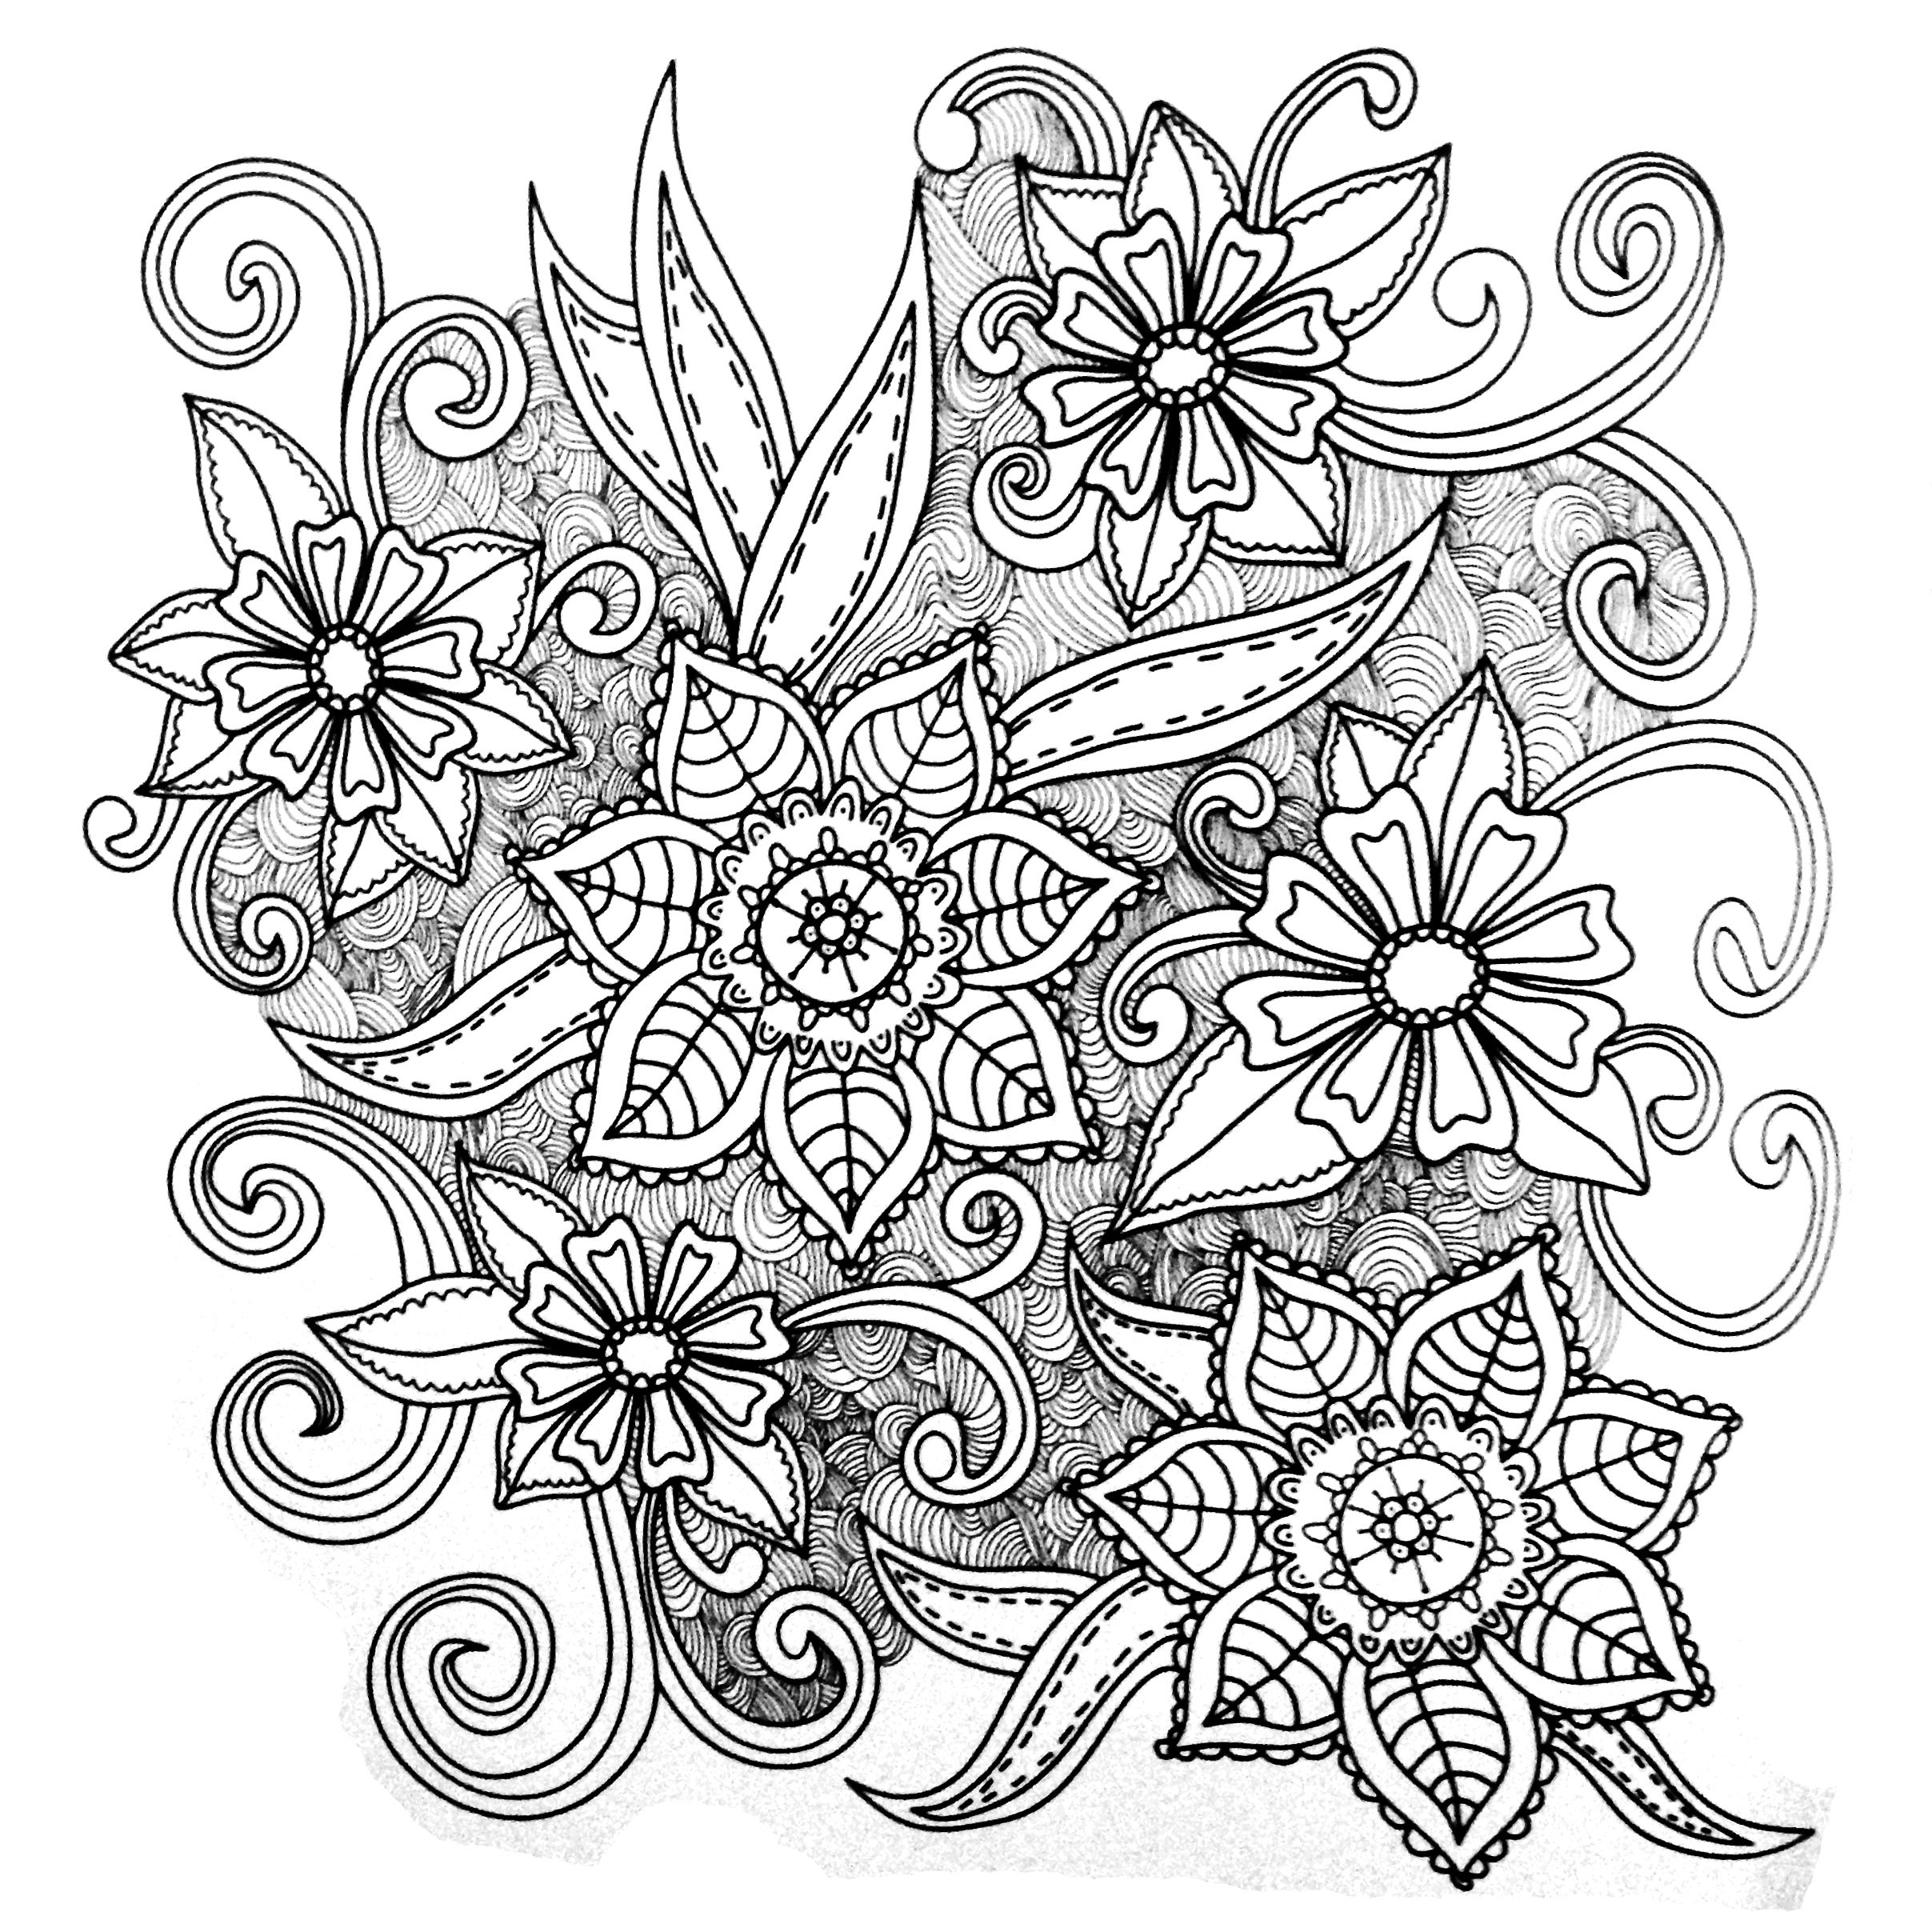 Colors of Nature Adult Colouring Book - Flowers | Tattoos ...